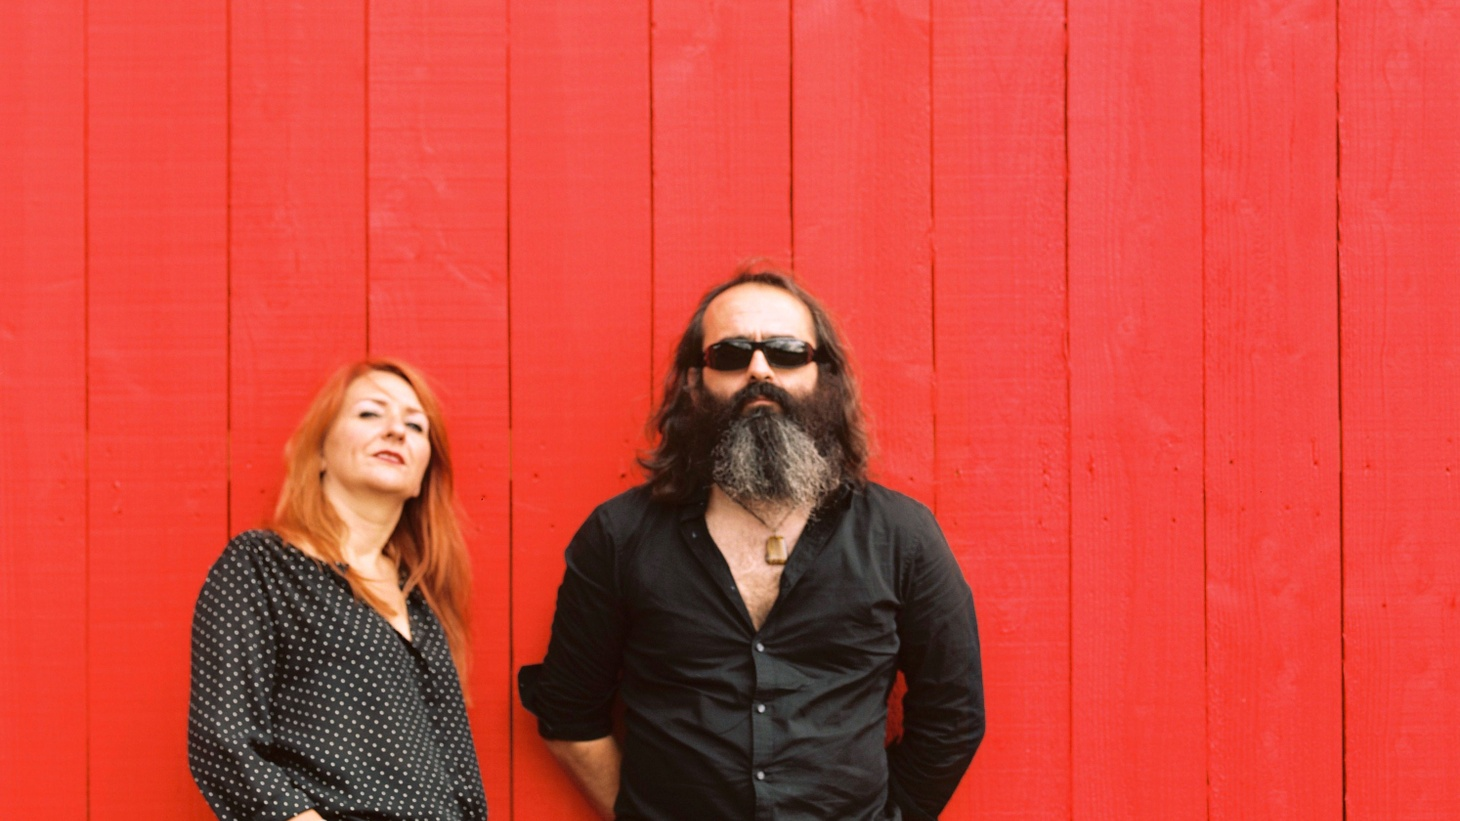 The chic French psych-pop band The Limiñanas are musical alchemists; combining sounds reminiscent of their love of 60's garage heroes, Italian soundtracks, and psych rock.